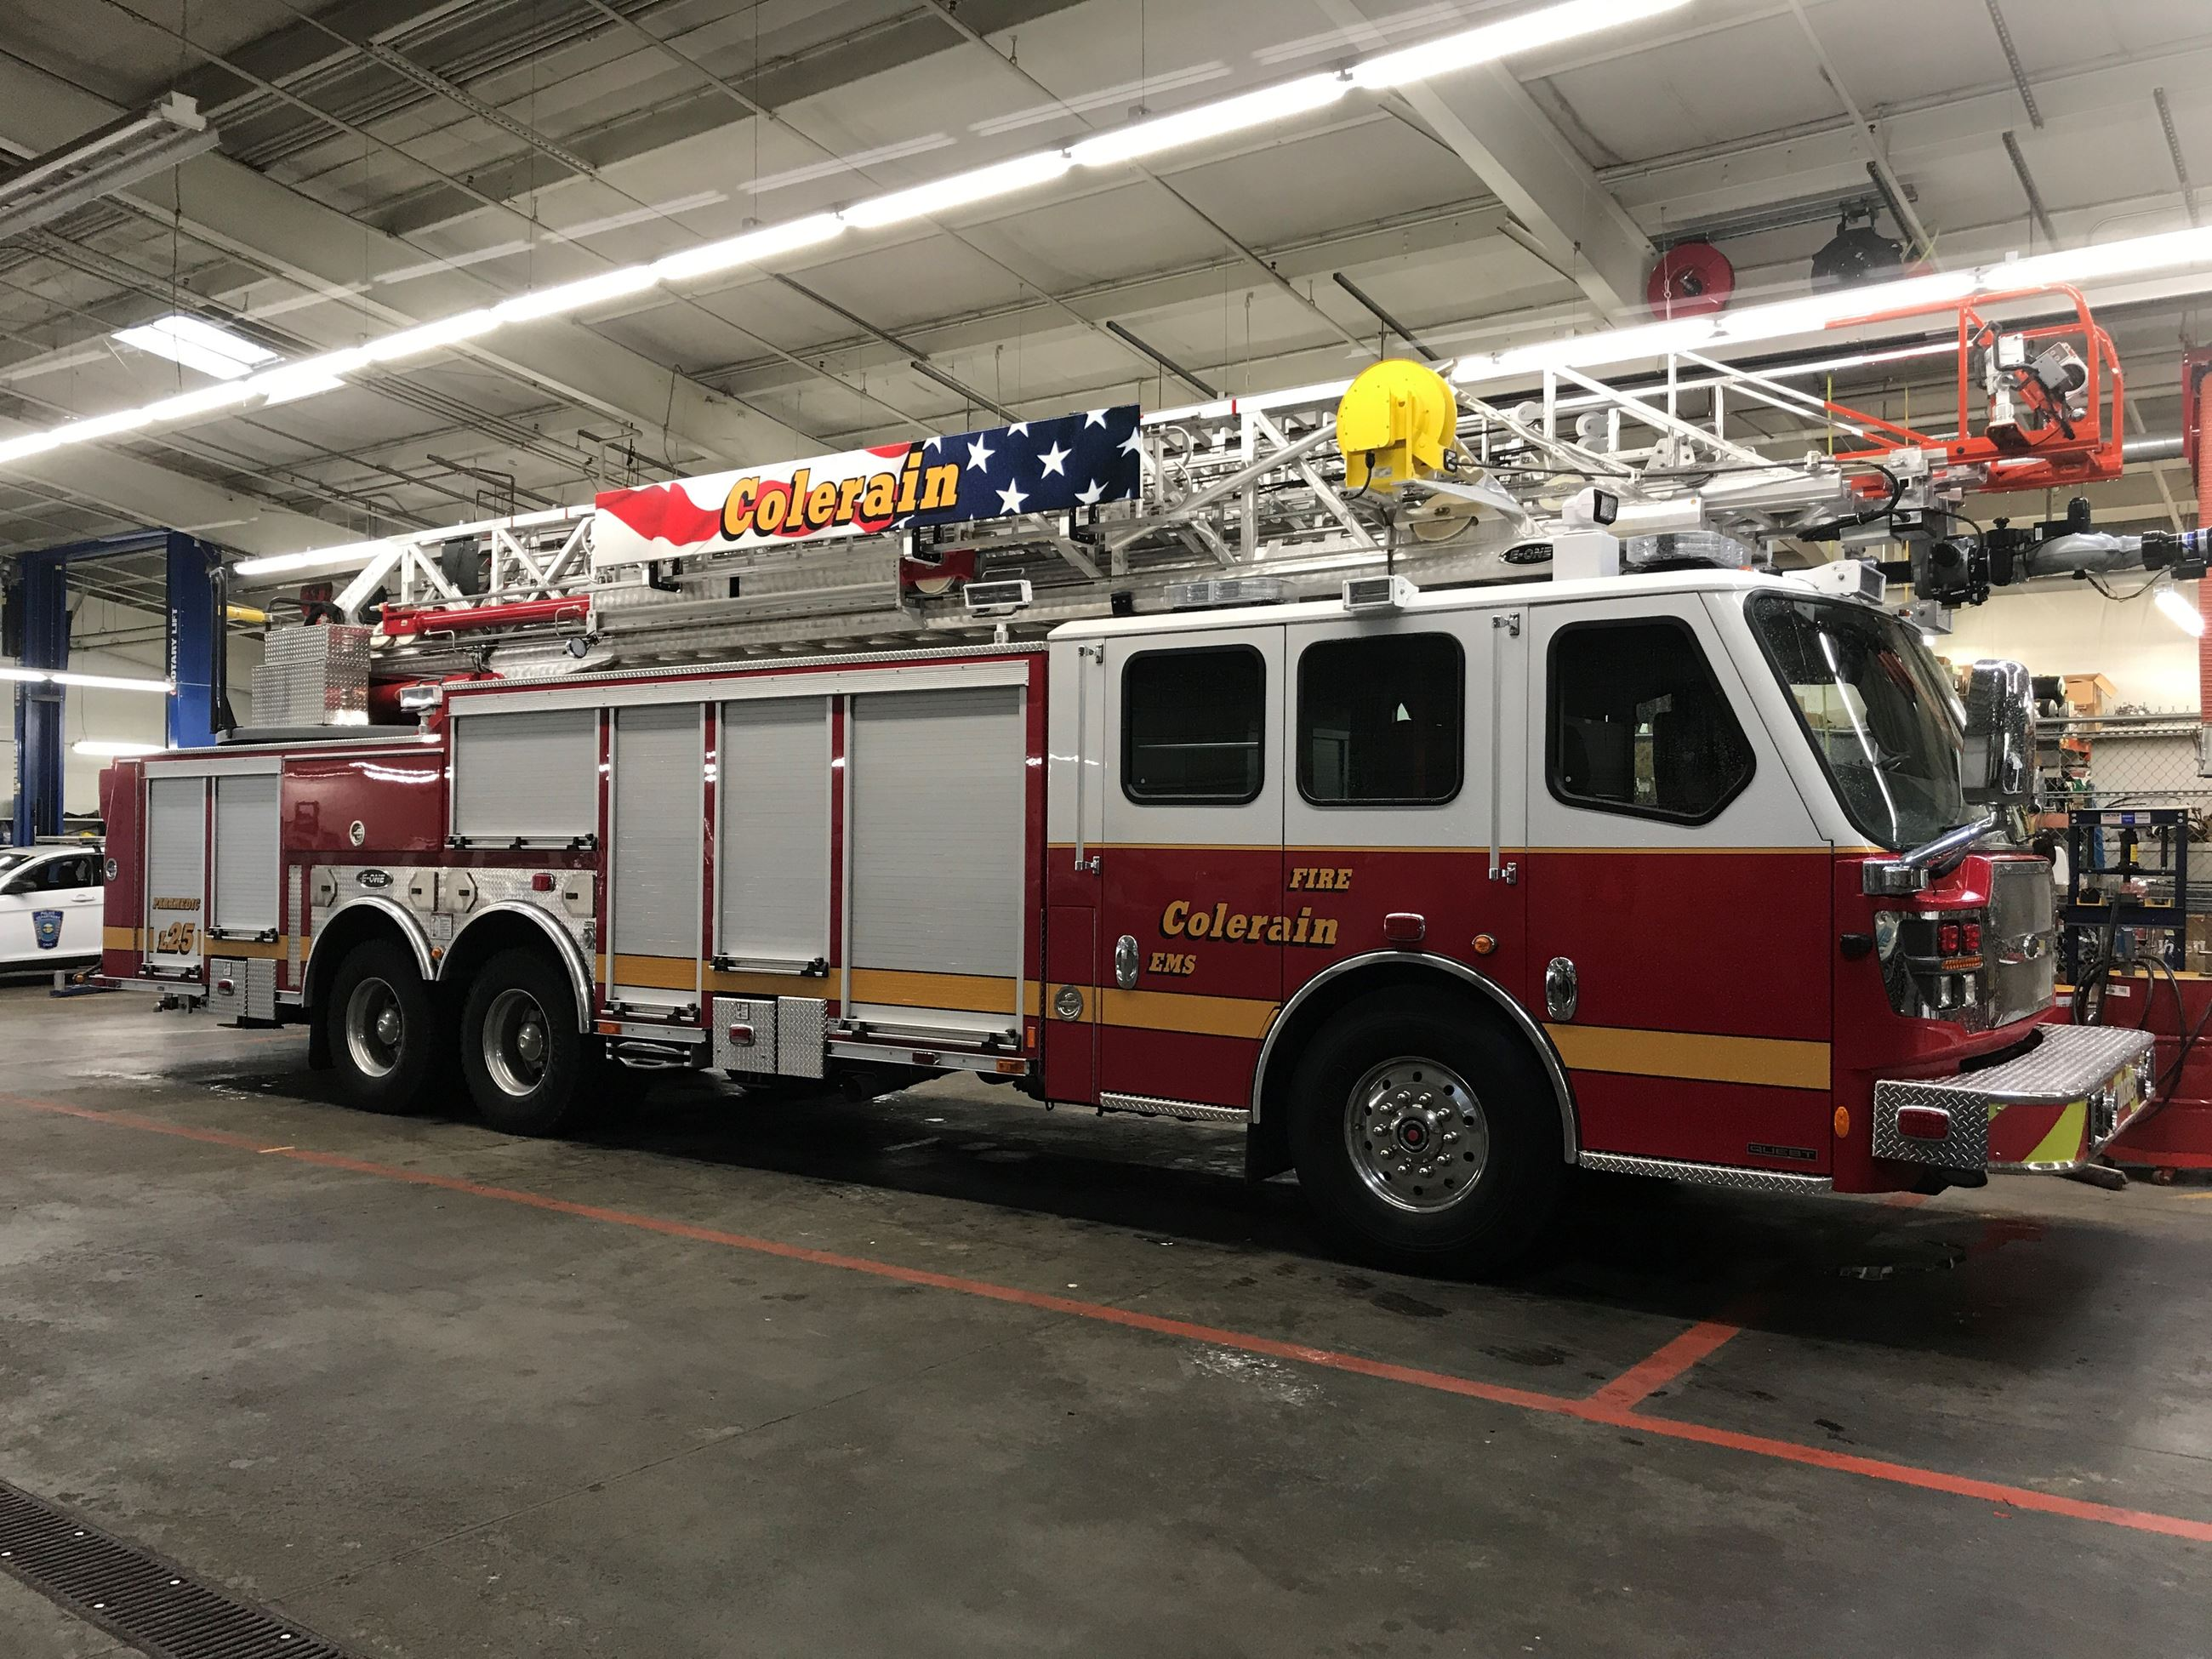 202 - Ladder Truck Opens in new window